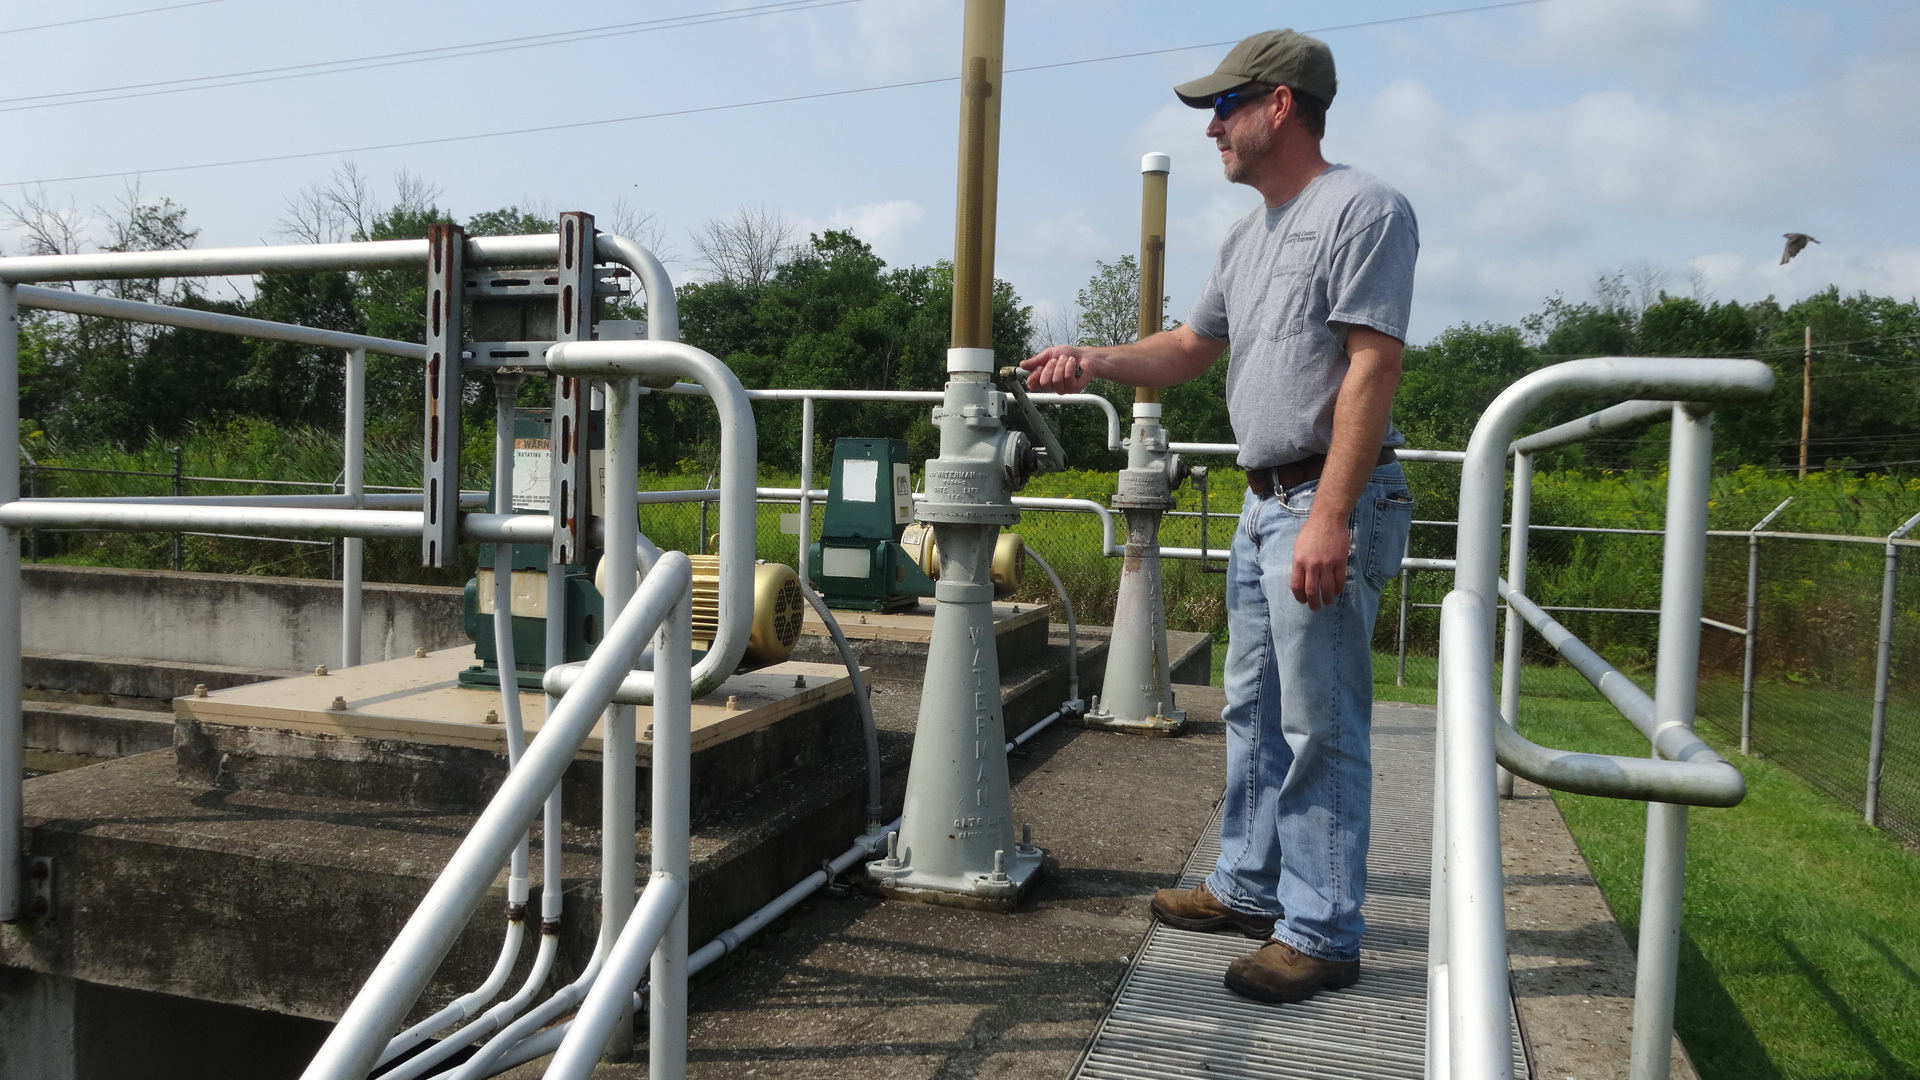 Dave Armstrong, chief operator of the Brookfield Wastewater Treatment Plant, is shown at the chlorine contact tank, one of the processes that will be removed in a plant renovation.